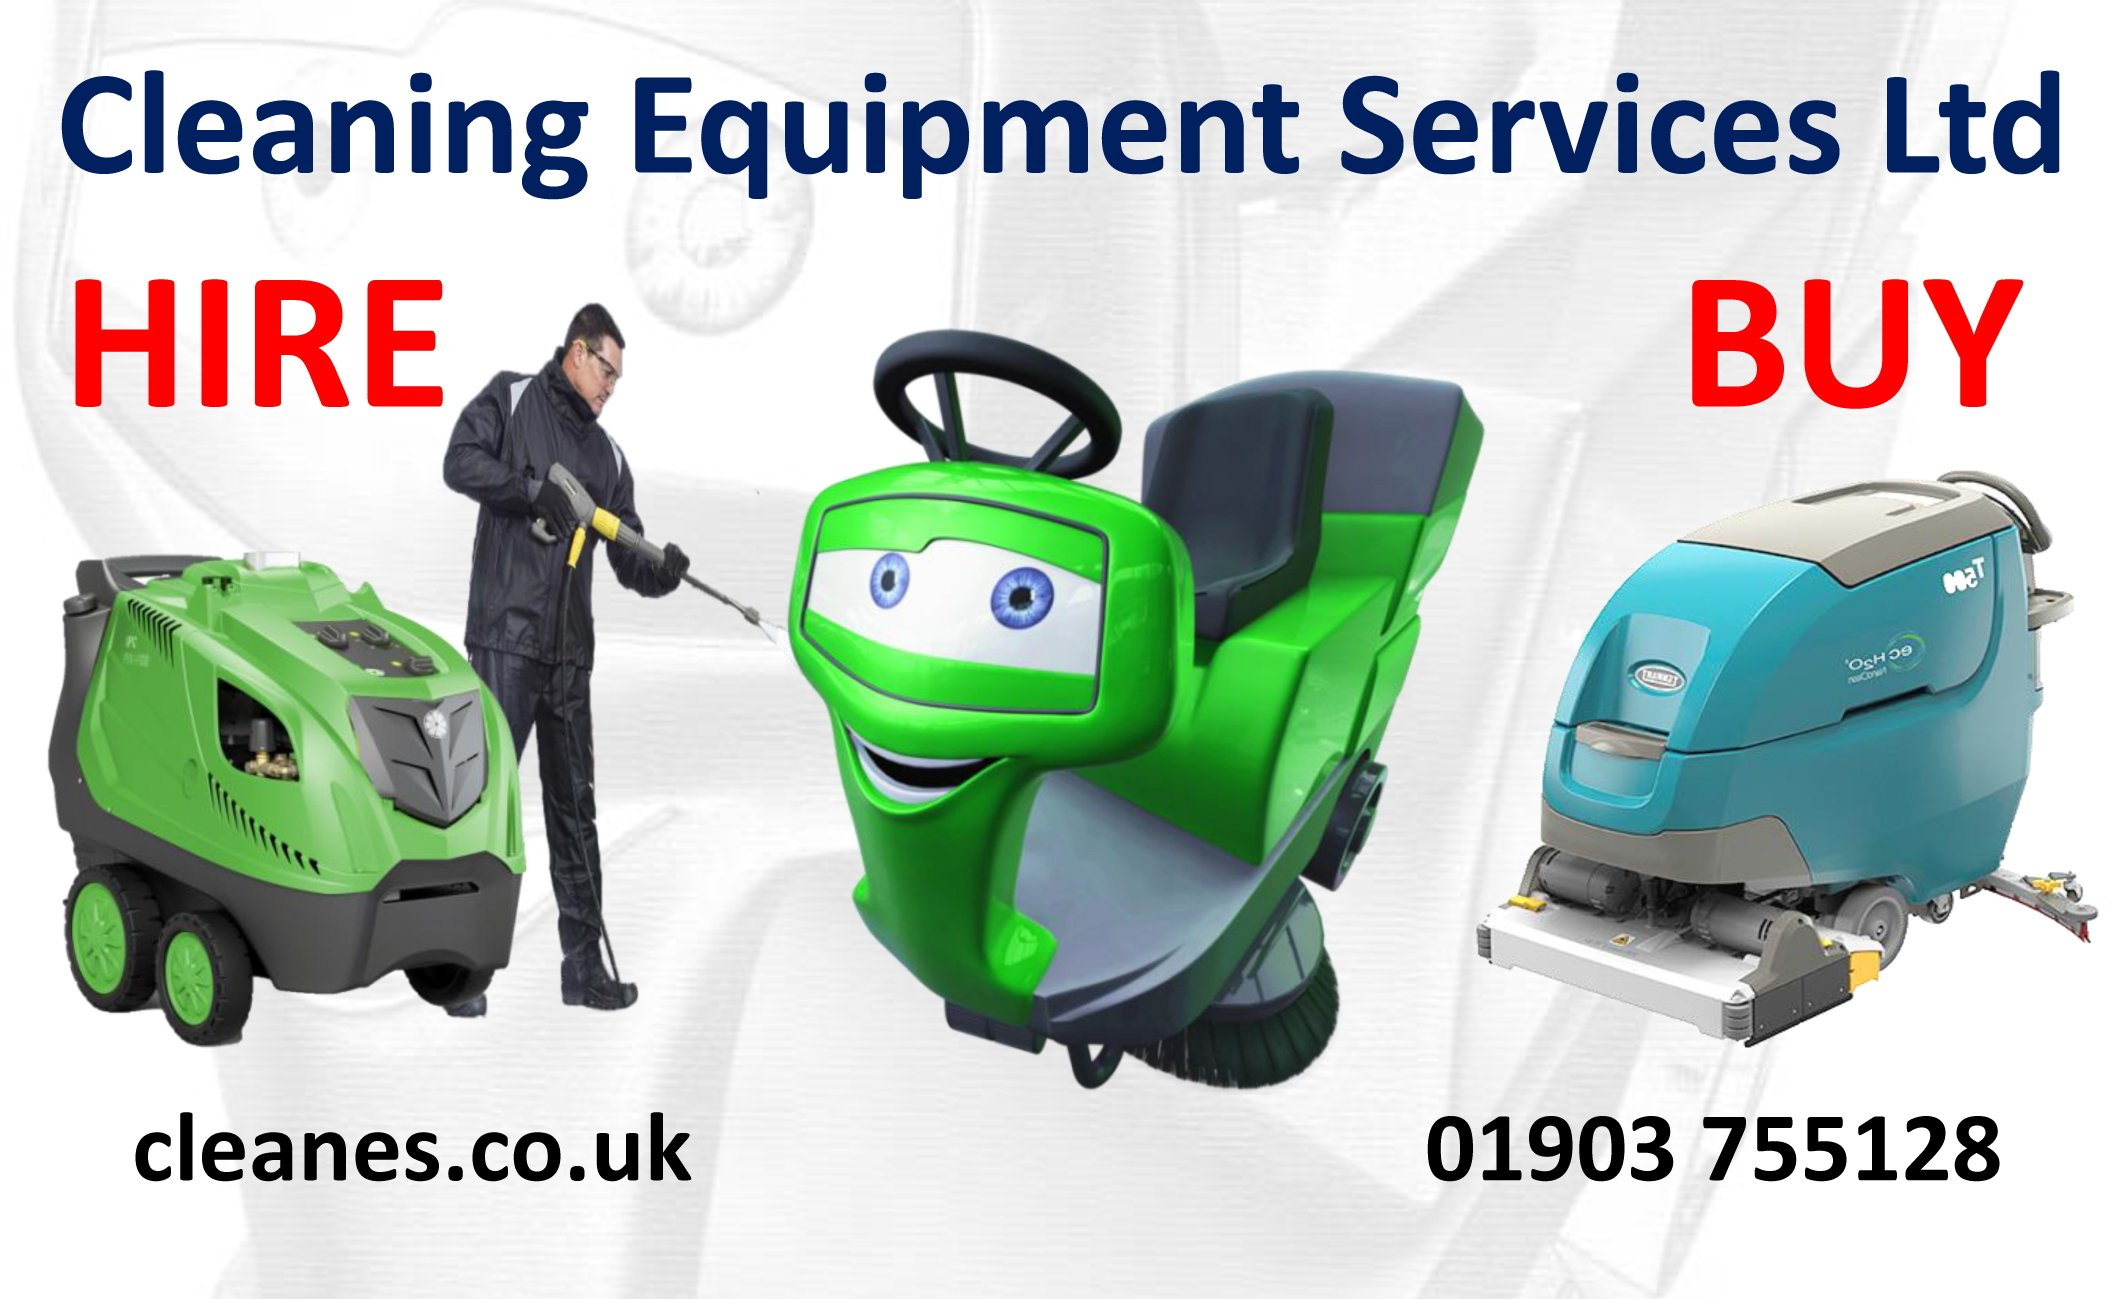 Buy Used Industrial Cleaning Machines For Sale Refurbished